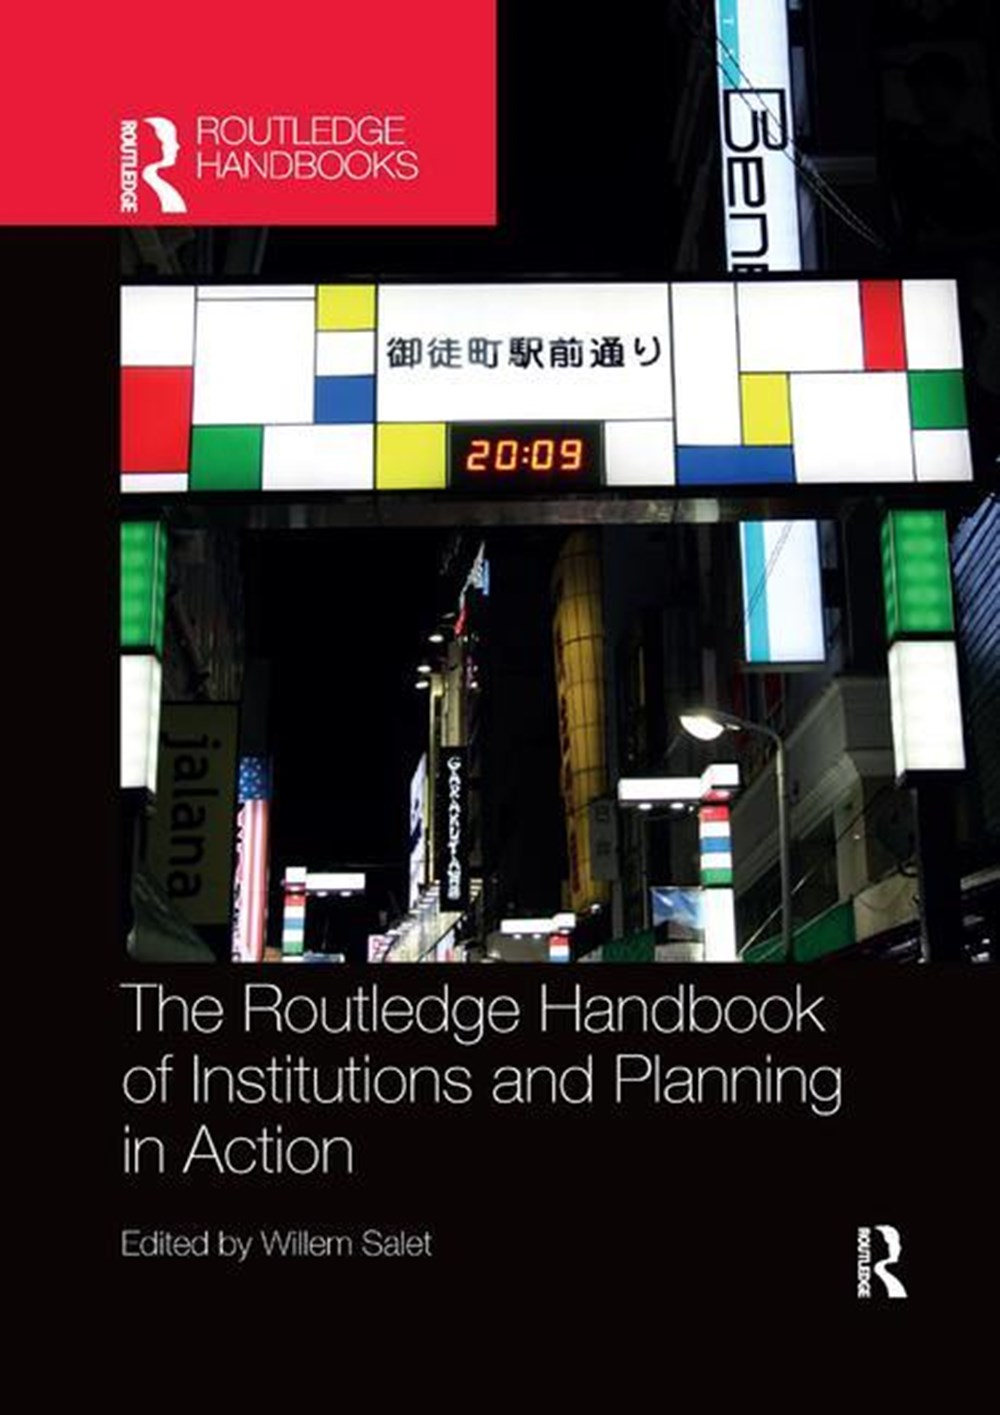 Routledge Handbook of Institutions and Planning in Action